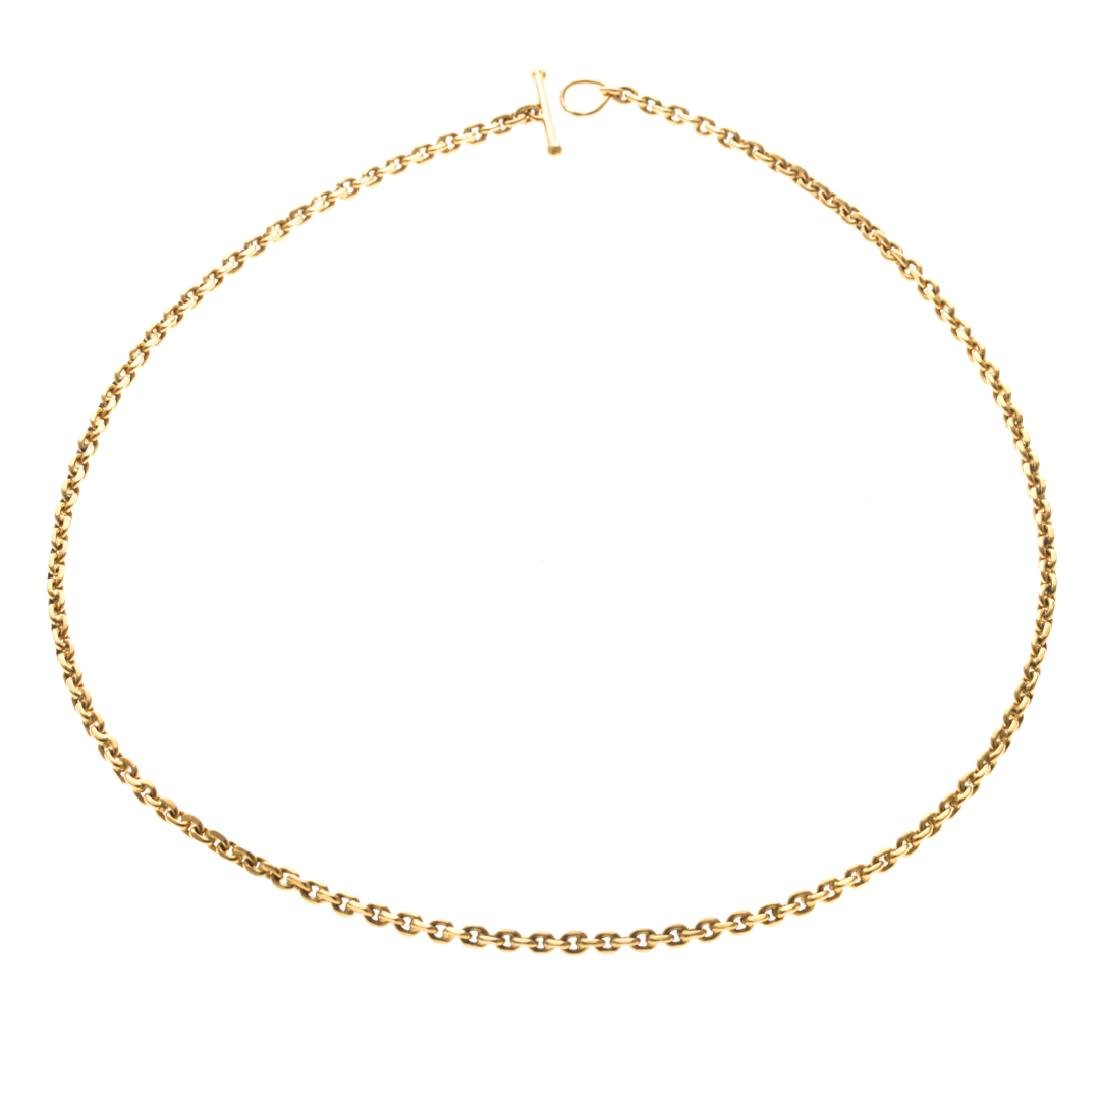 A Curbed Link Necklace in 22K Gold